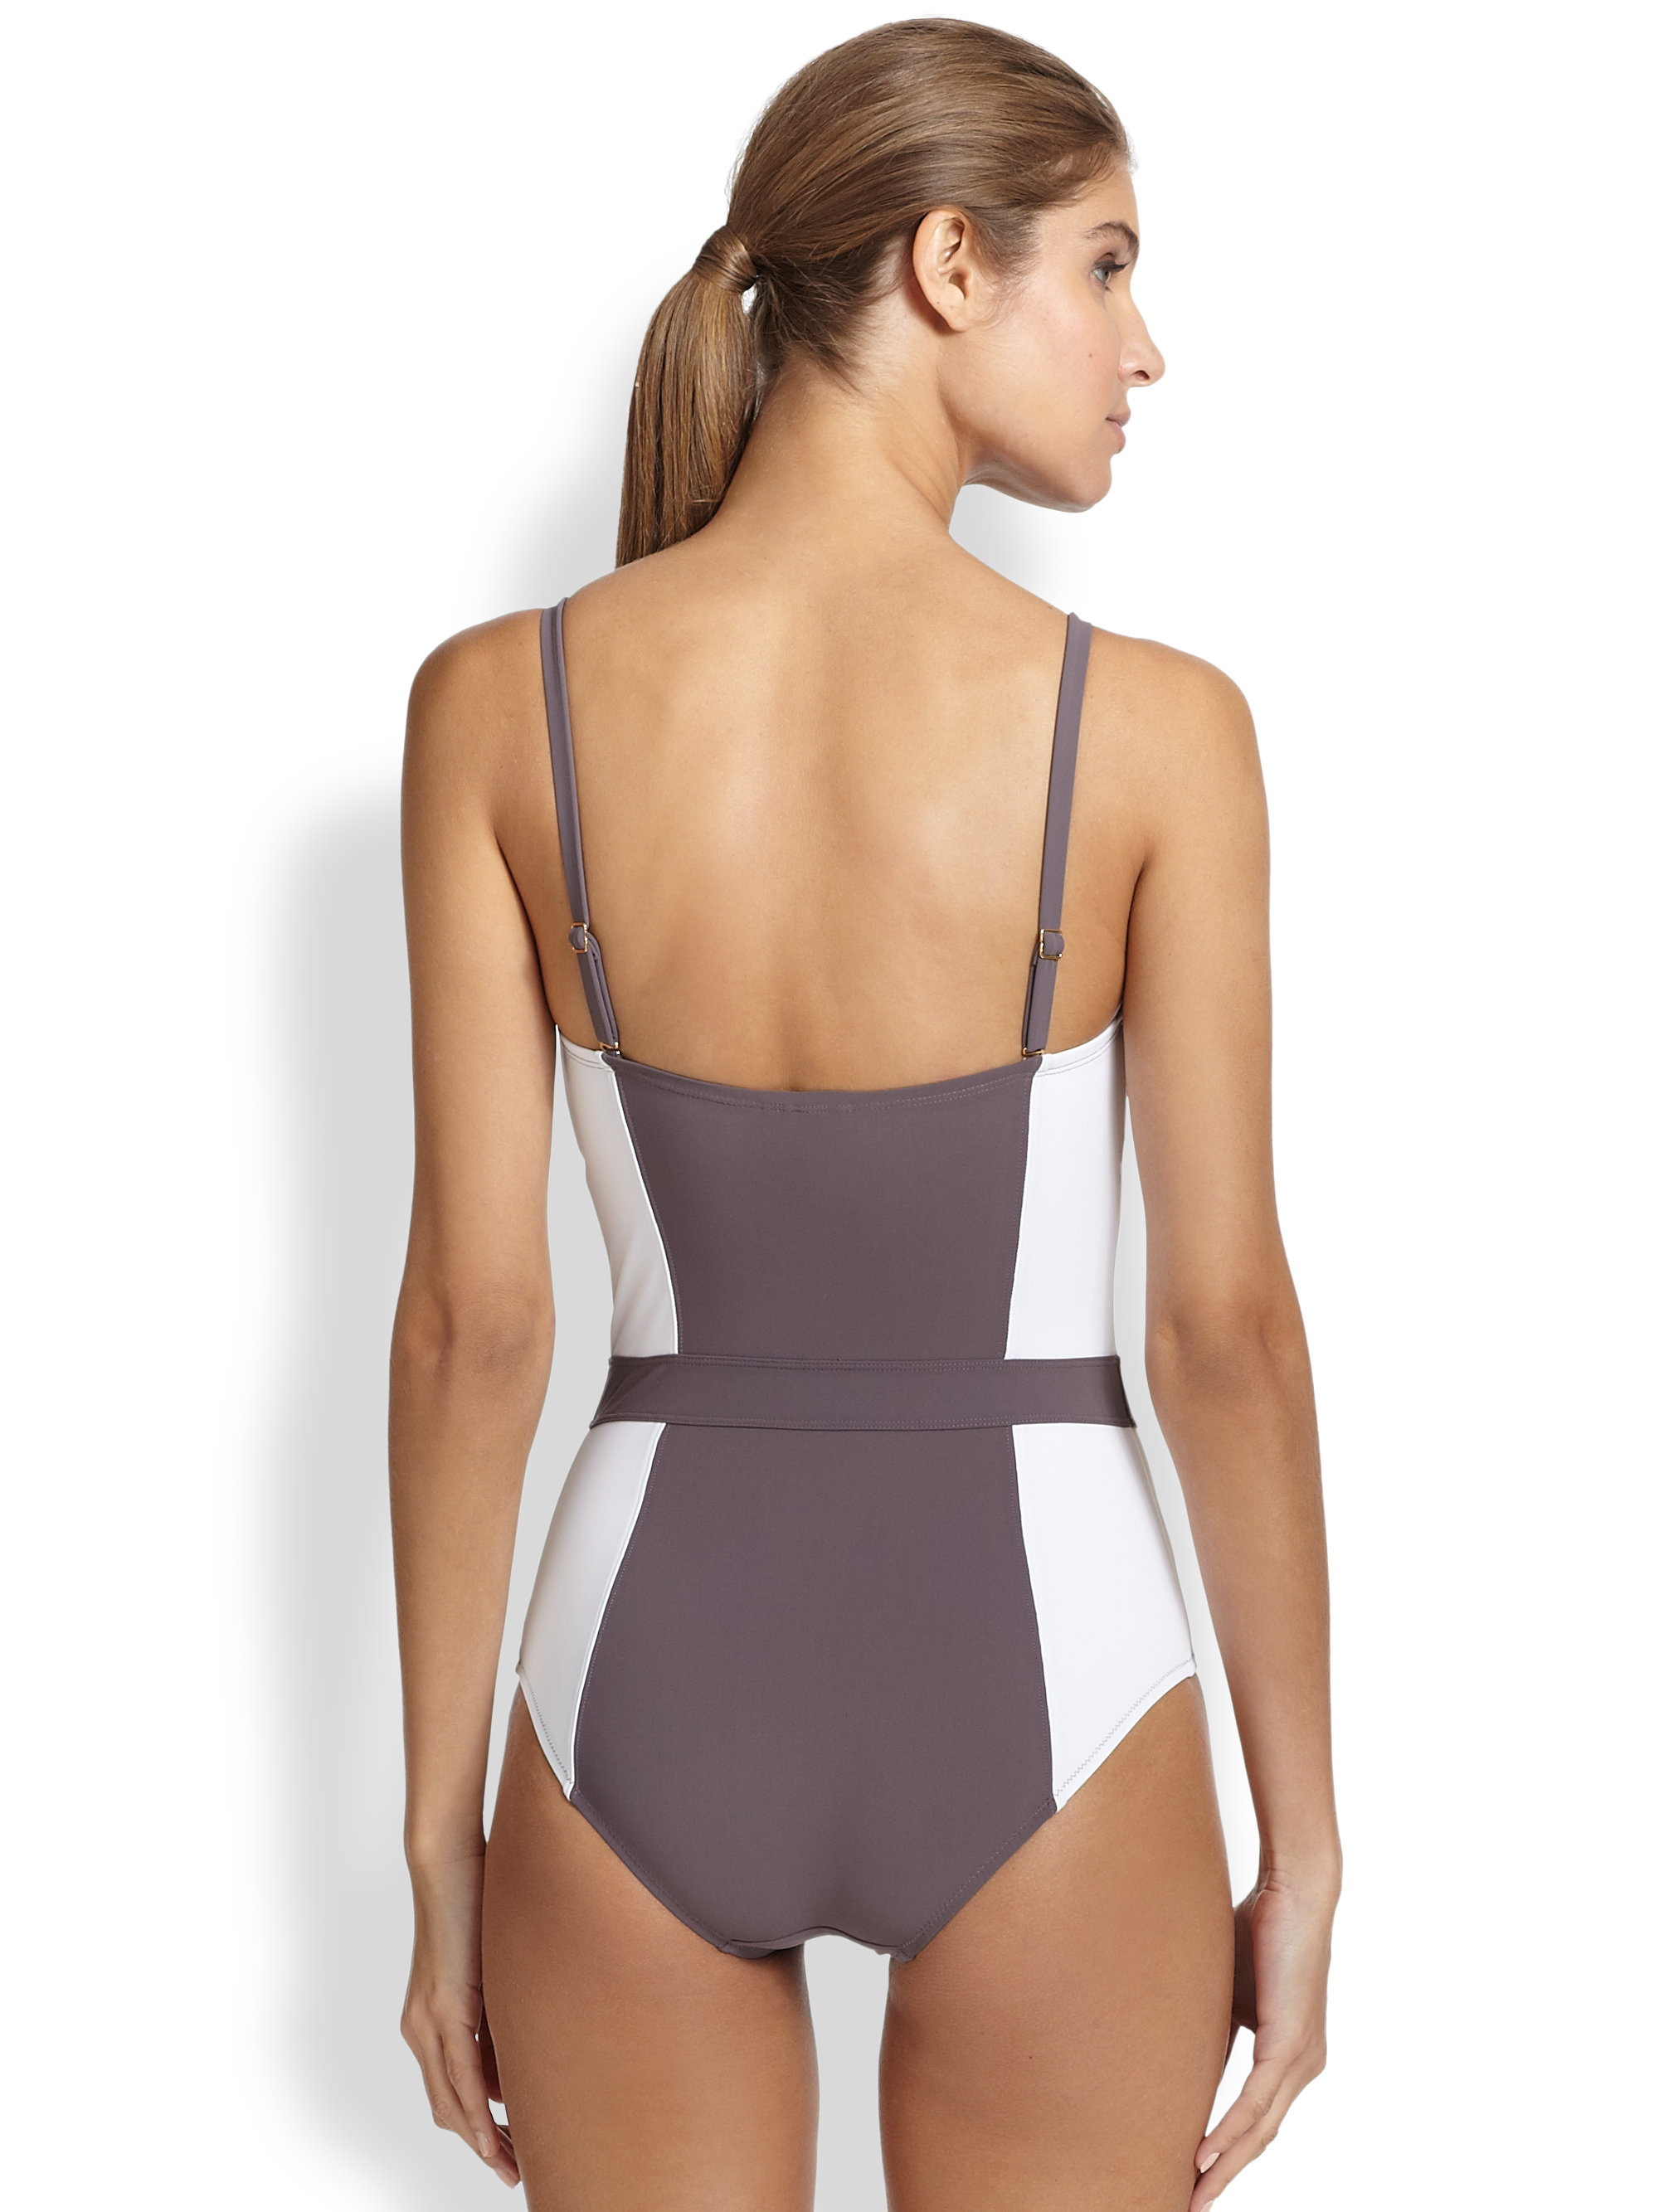 55c346dab5674 Tory Burch Colorblock One-piece Swimsuit in Gray - Lyst